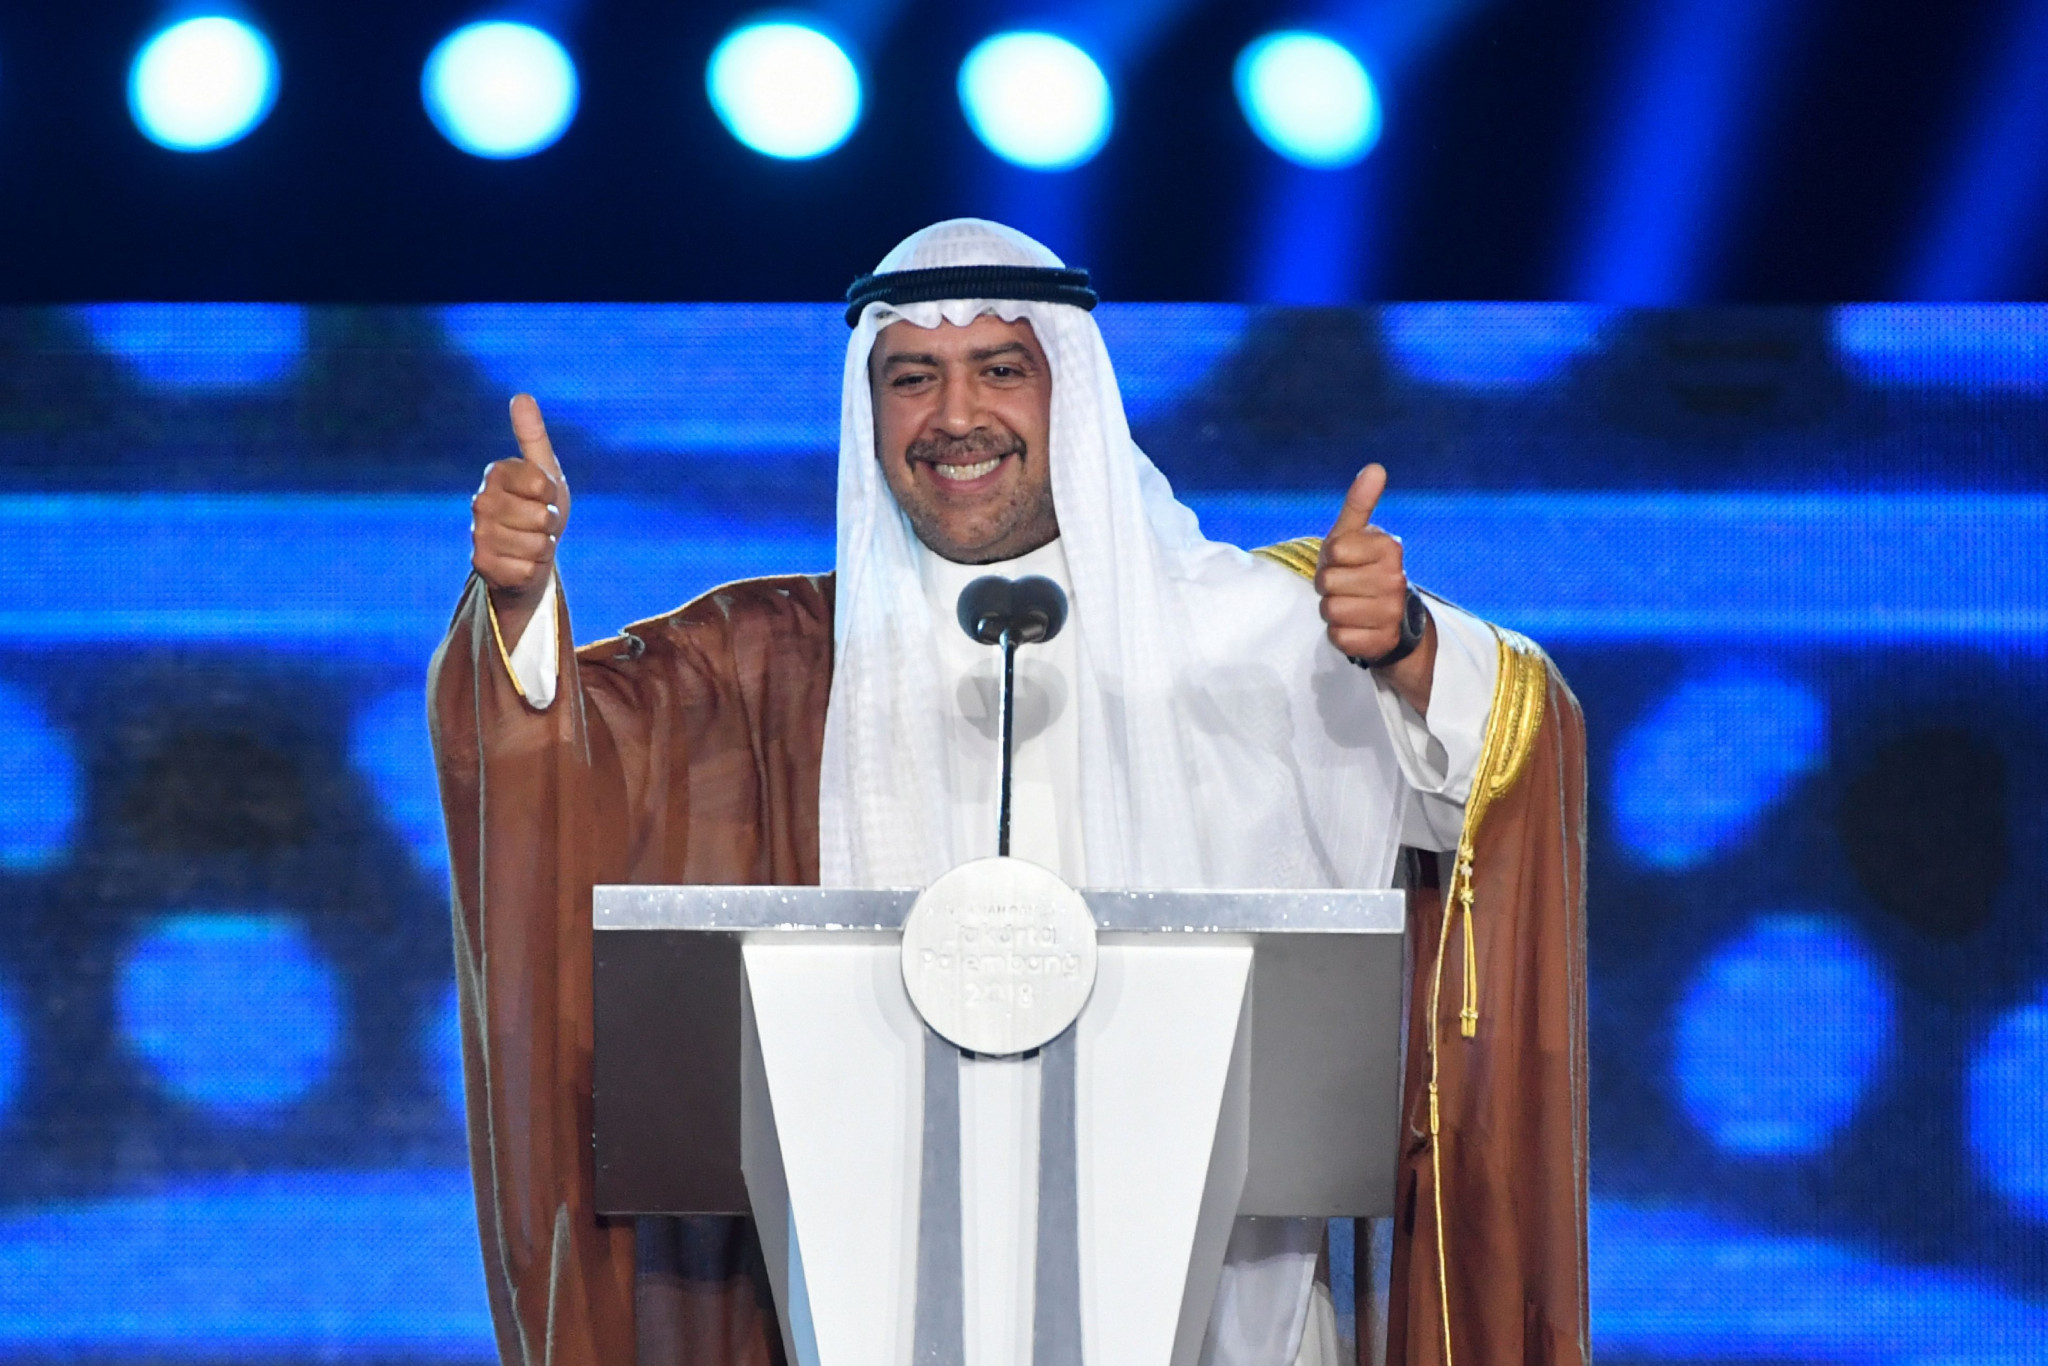 Sheikh Ahmad is due to be re-elected as the head of the umbrella organisation at the ANOC General Assembly ©Getty Images